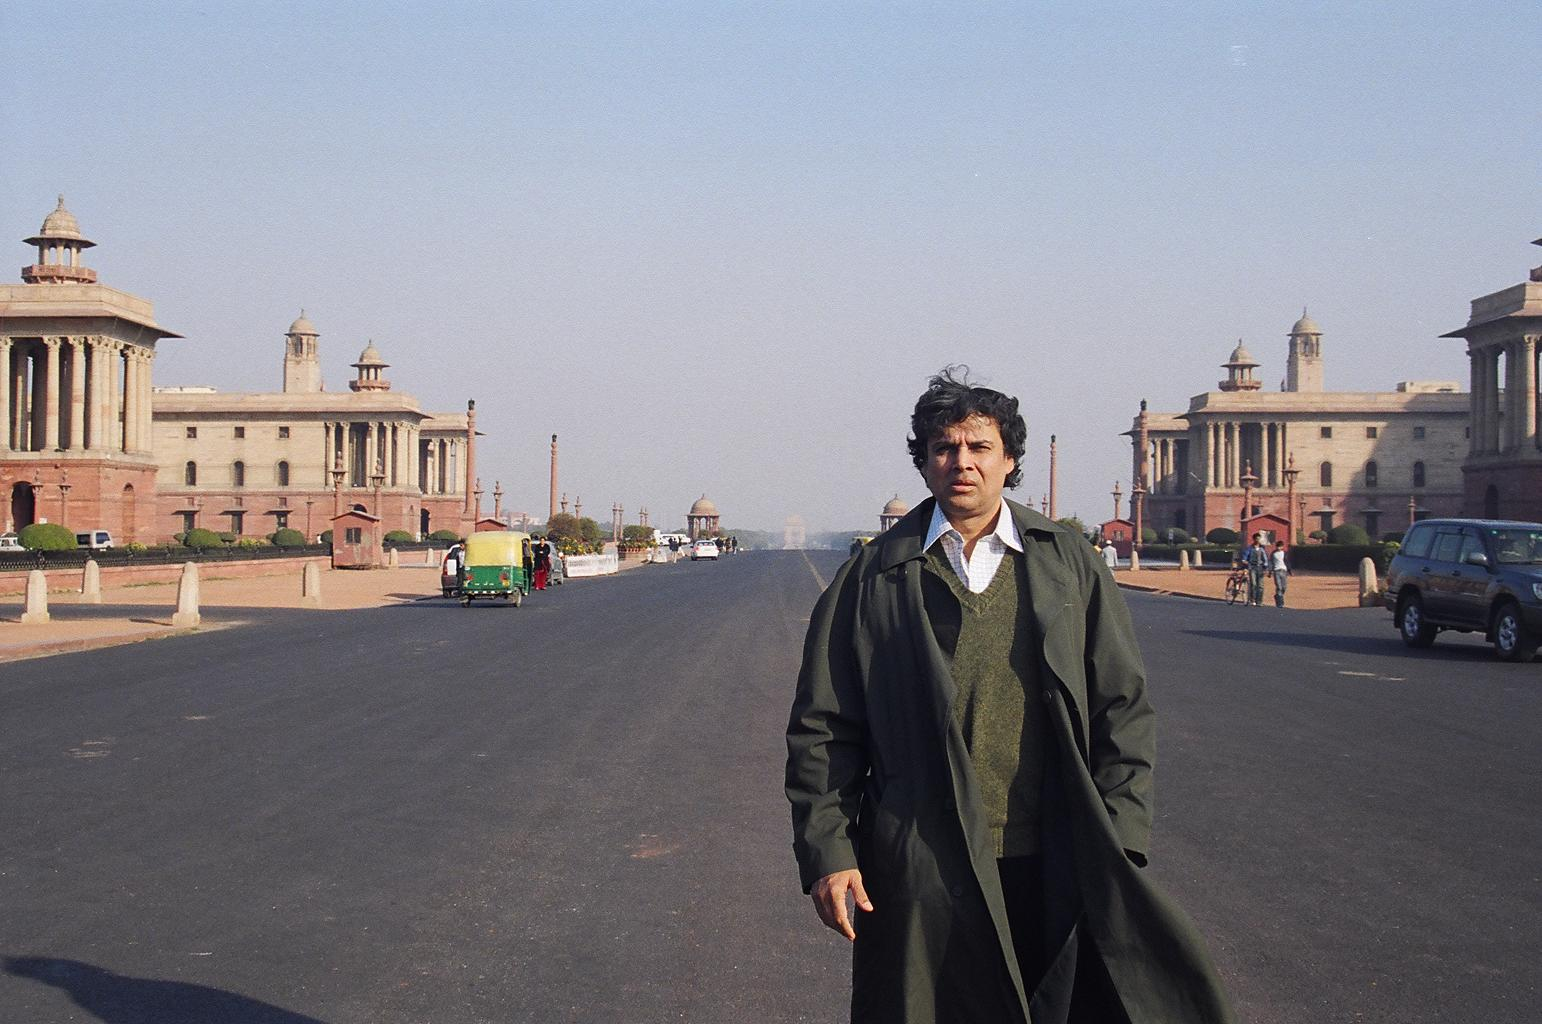 Myself at 50, standing within the 'RASHTRAPATI BHAVAN' perimeter (the Indian OVAL HOUSE); with 'INDIA-GATE' and 'RAJPATH' in the background; New Delhi, INDIA (1/14/08)